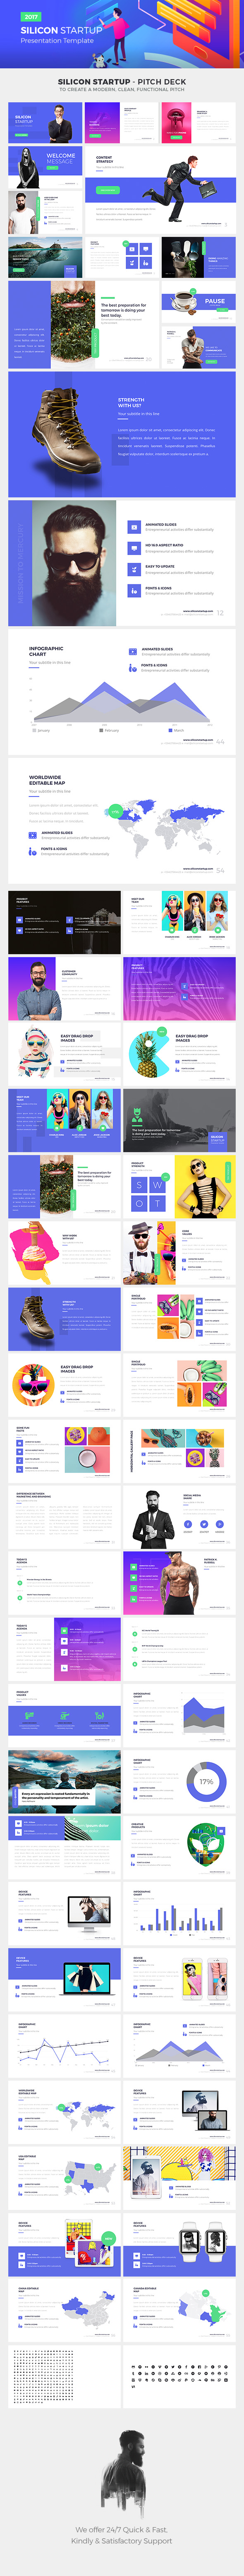 SILICON STARTUP - Google Slides Presentation Template - Google Slides Presentation Templates